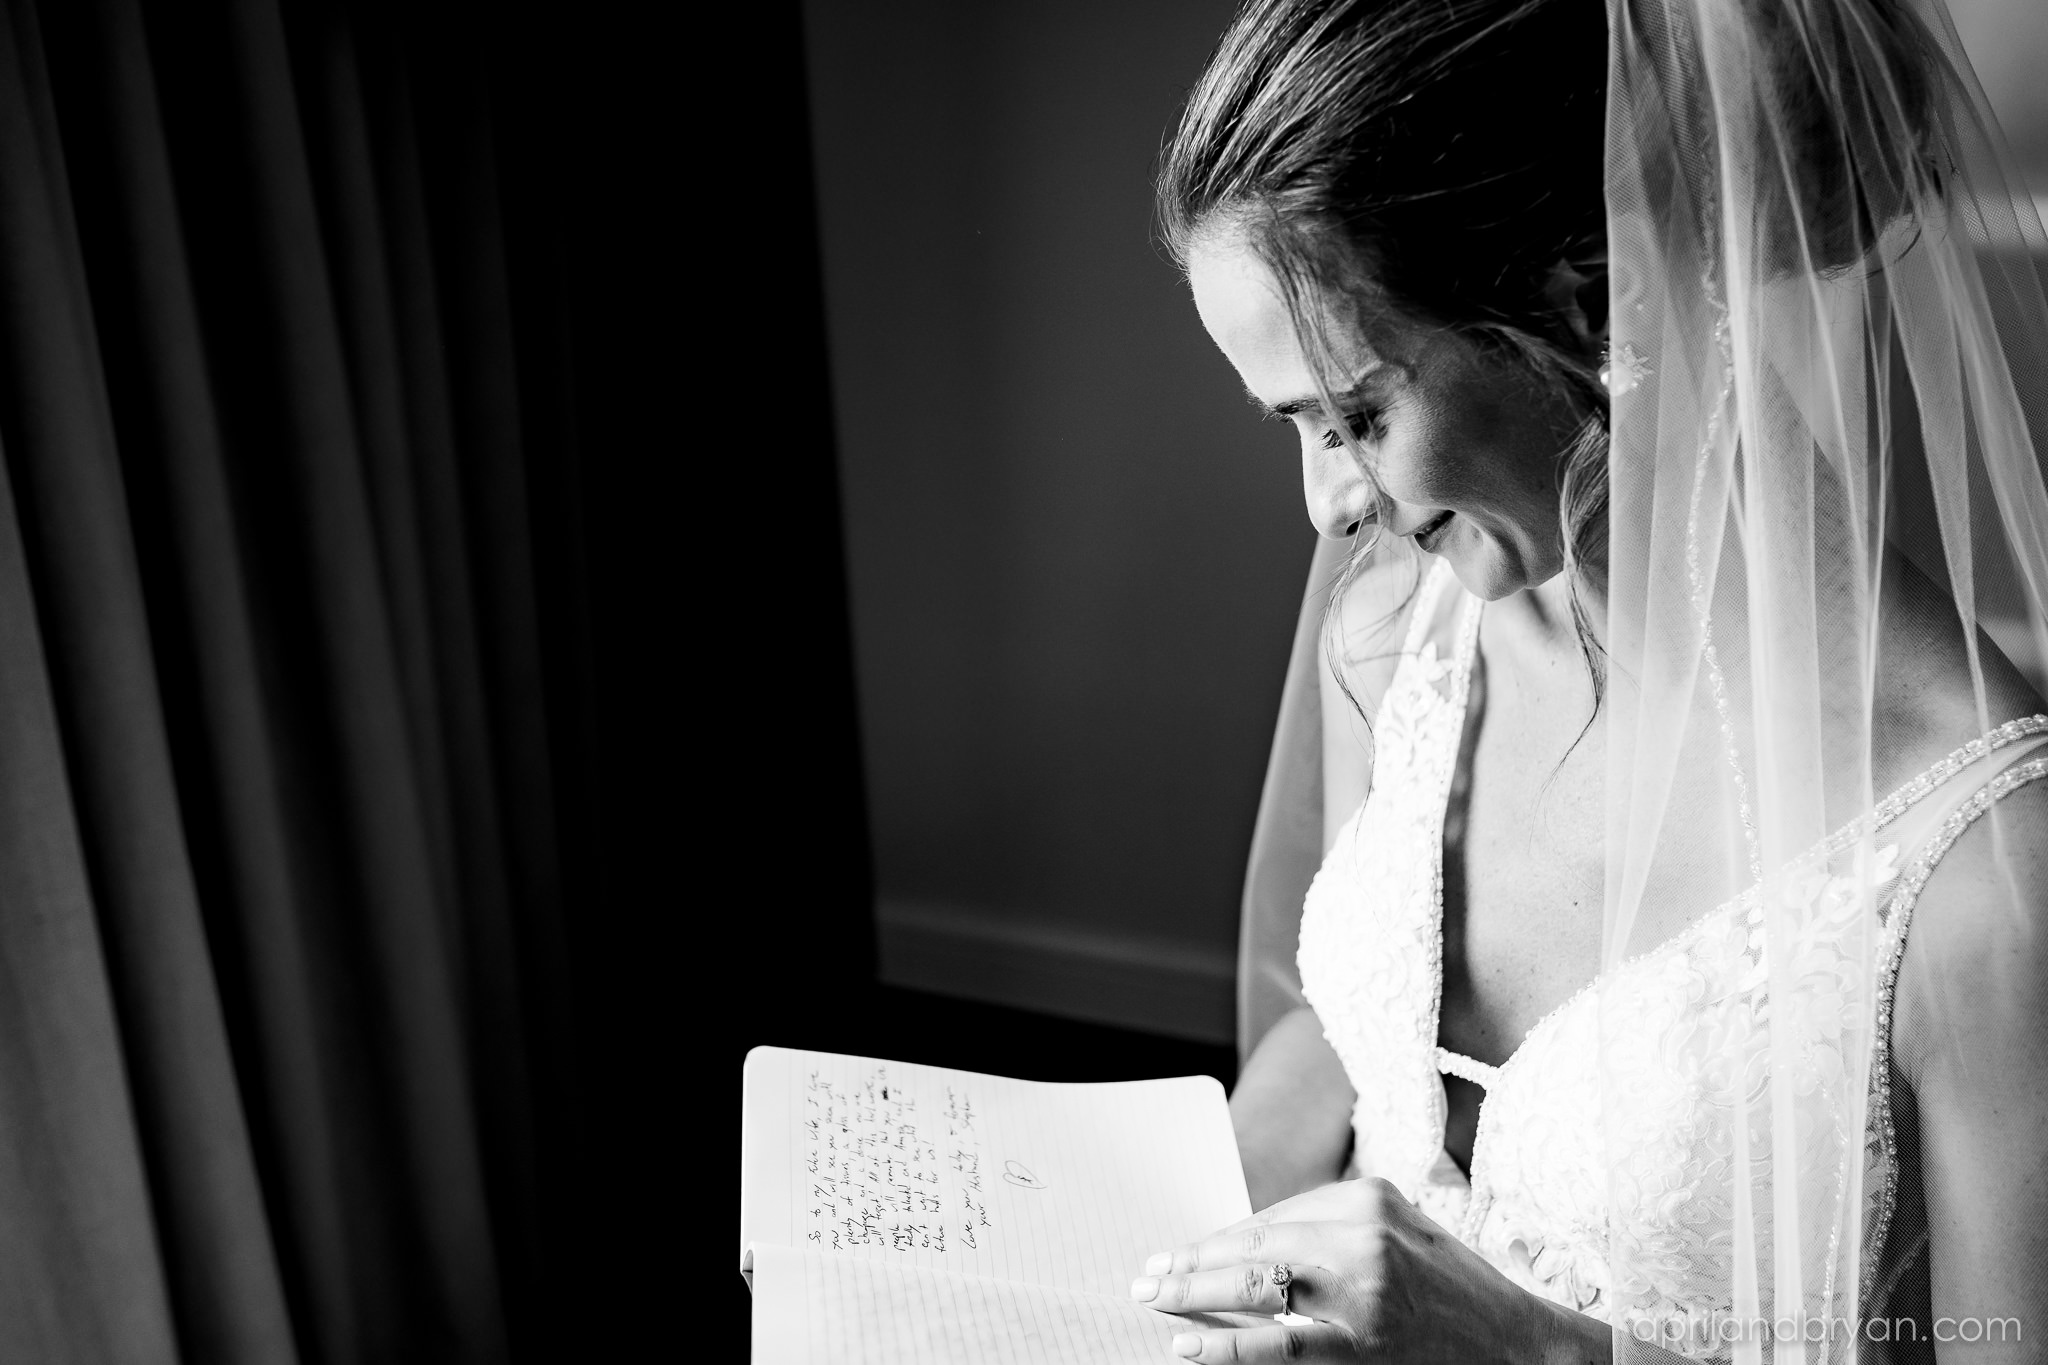 The bride reads the excerpt the groom has written for her before they wed at the Franklin Institute in Philadelphia, PA. Shot by April & Bryan Photography. Featured on Dream Weddings.